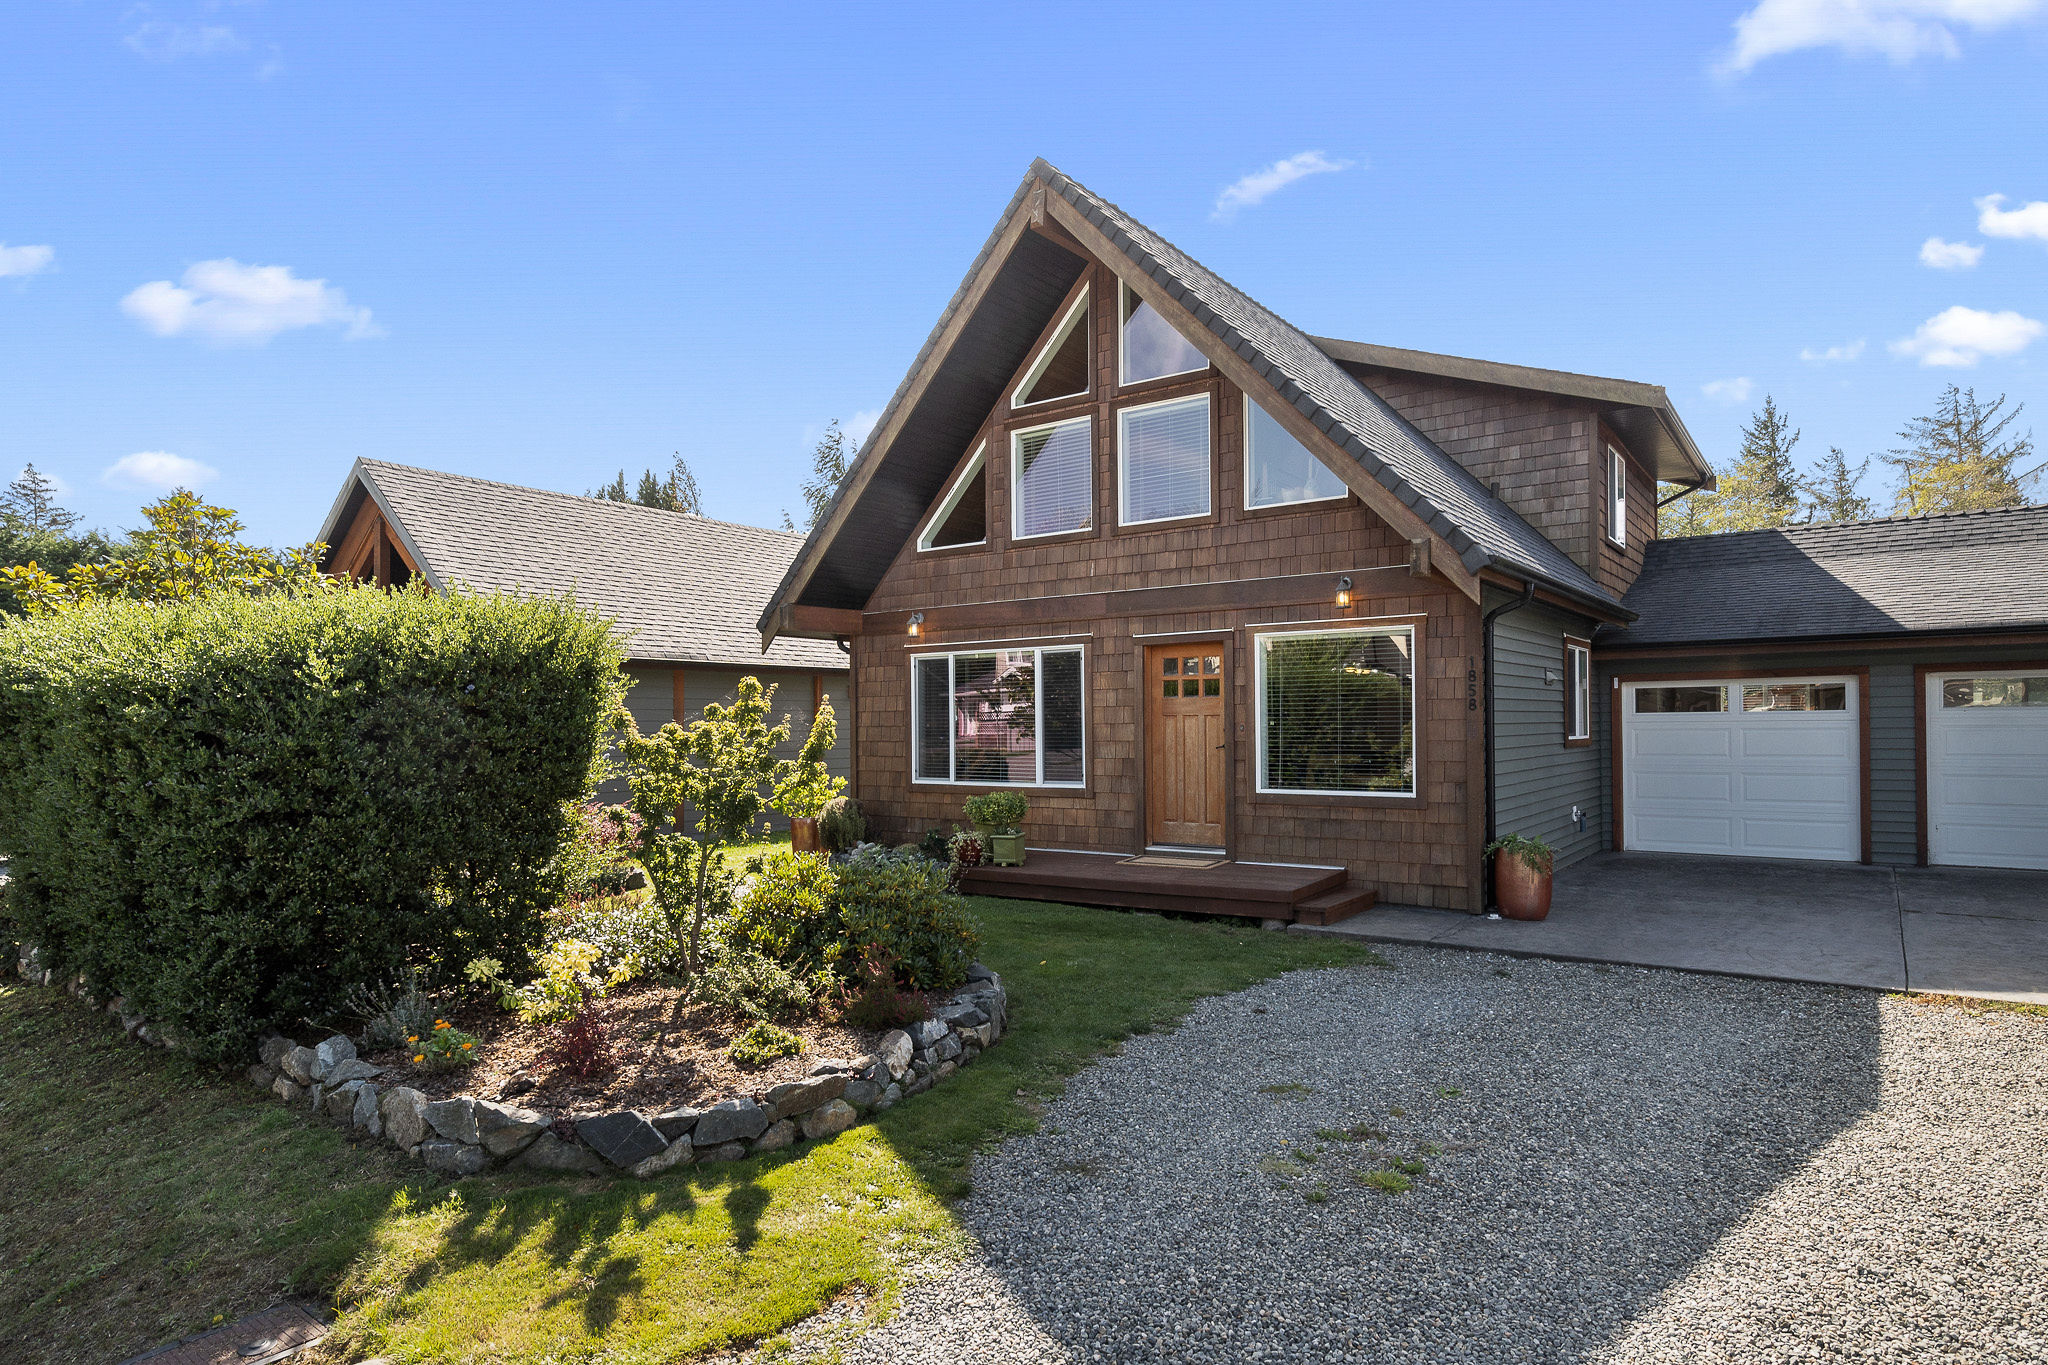 Gorgeous West-Coast Style Duplex For Sale in Sooke - 1858 Tominny Road - 3 bedrooms 2 bathrooms